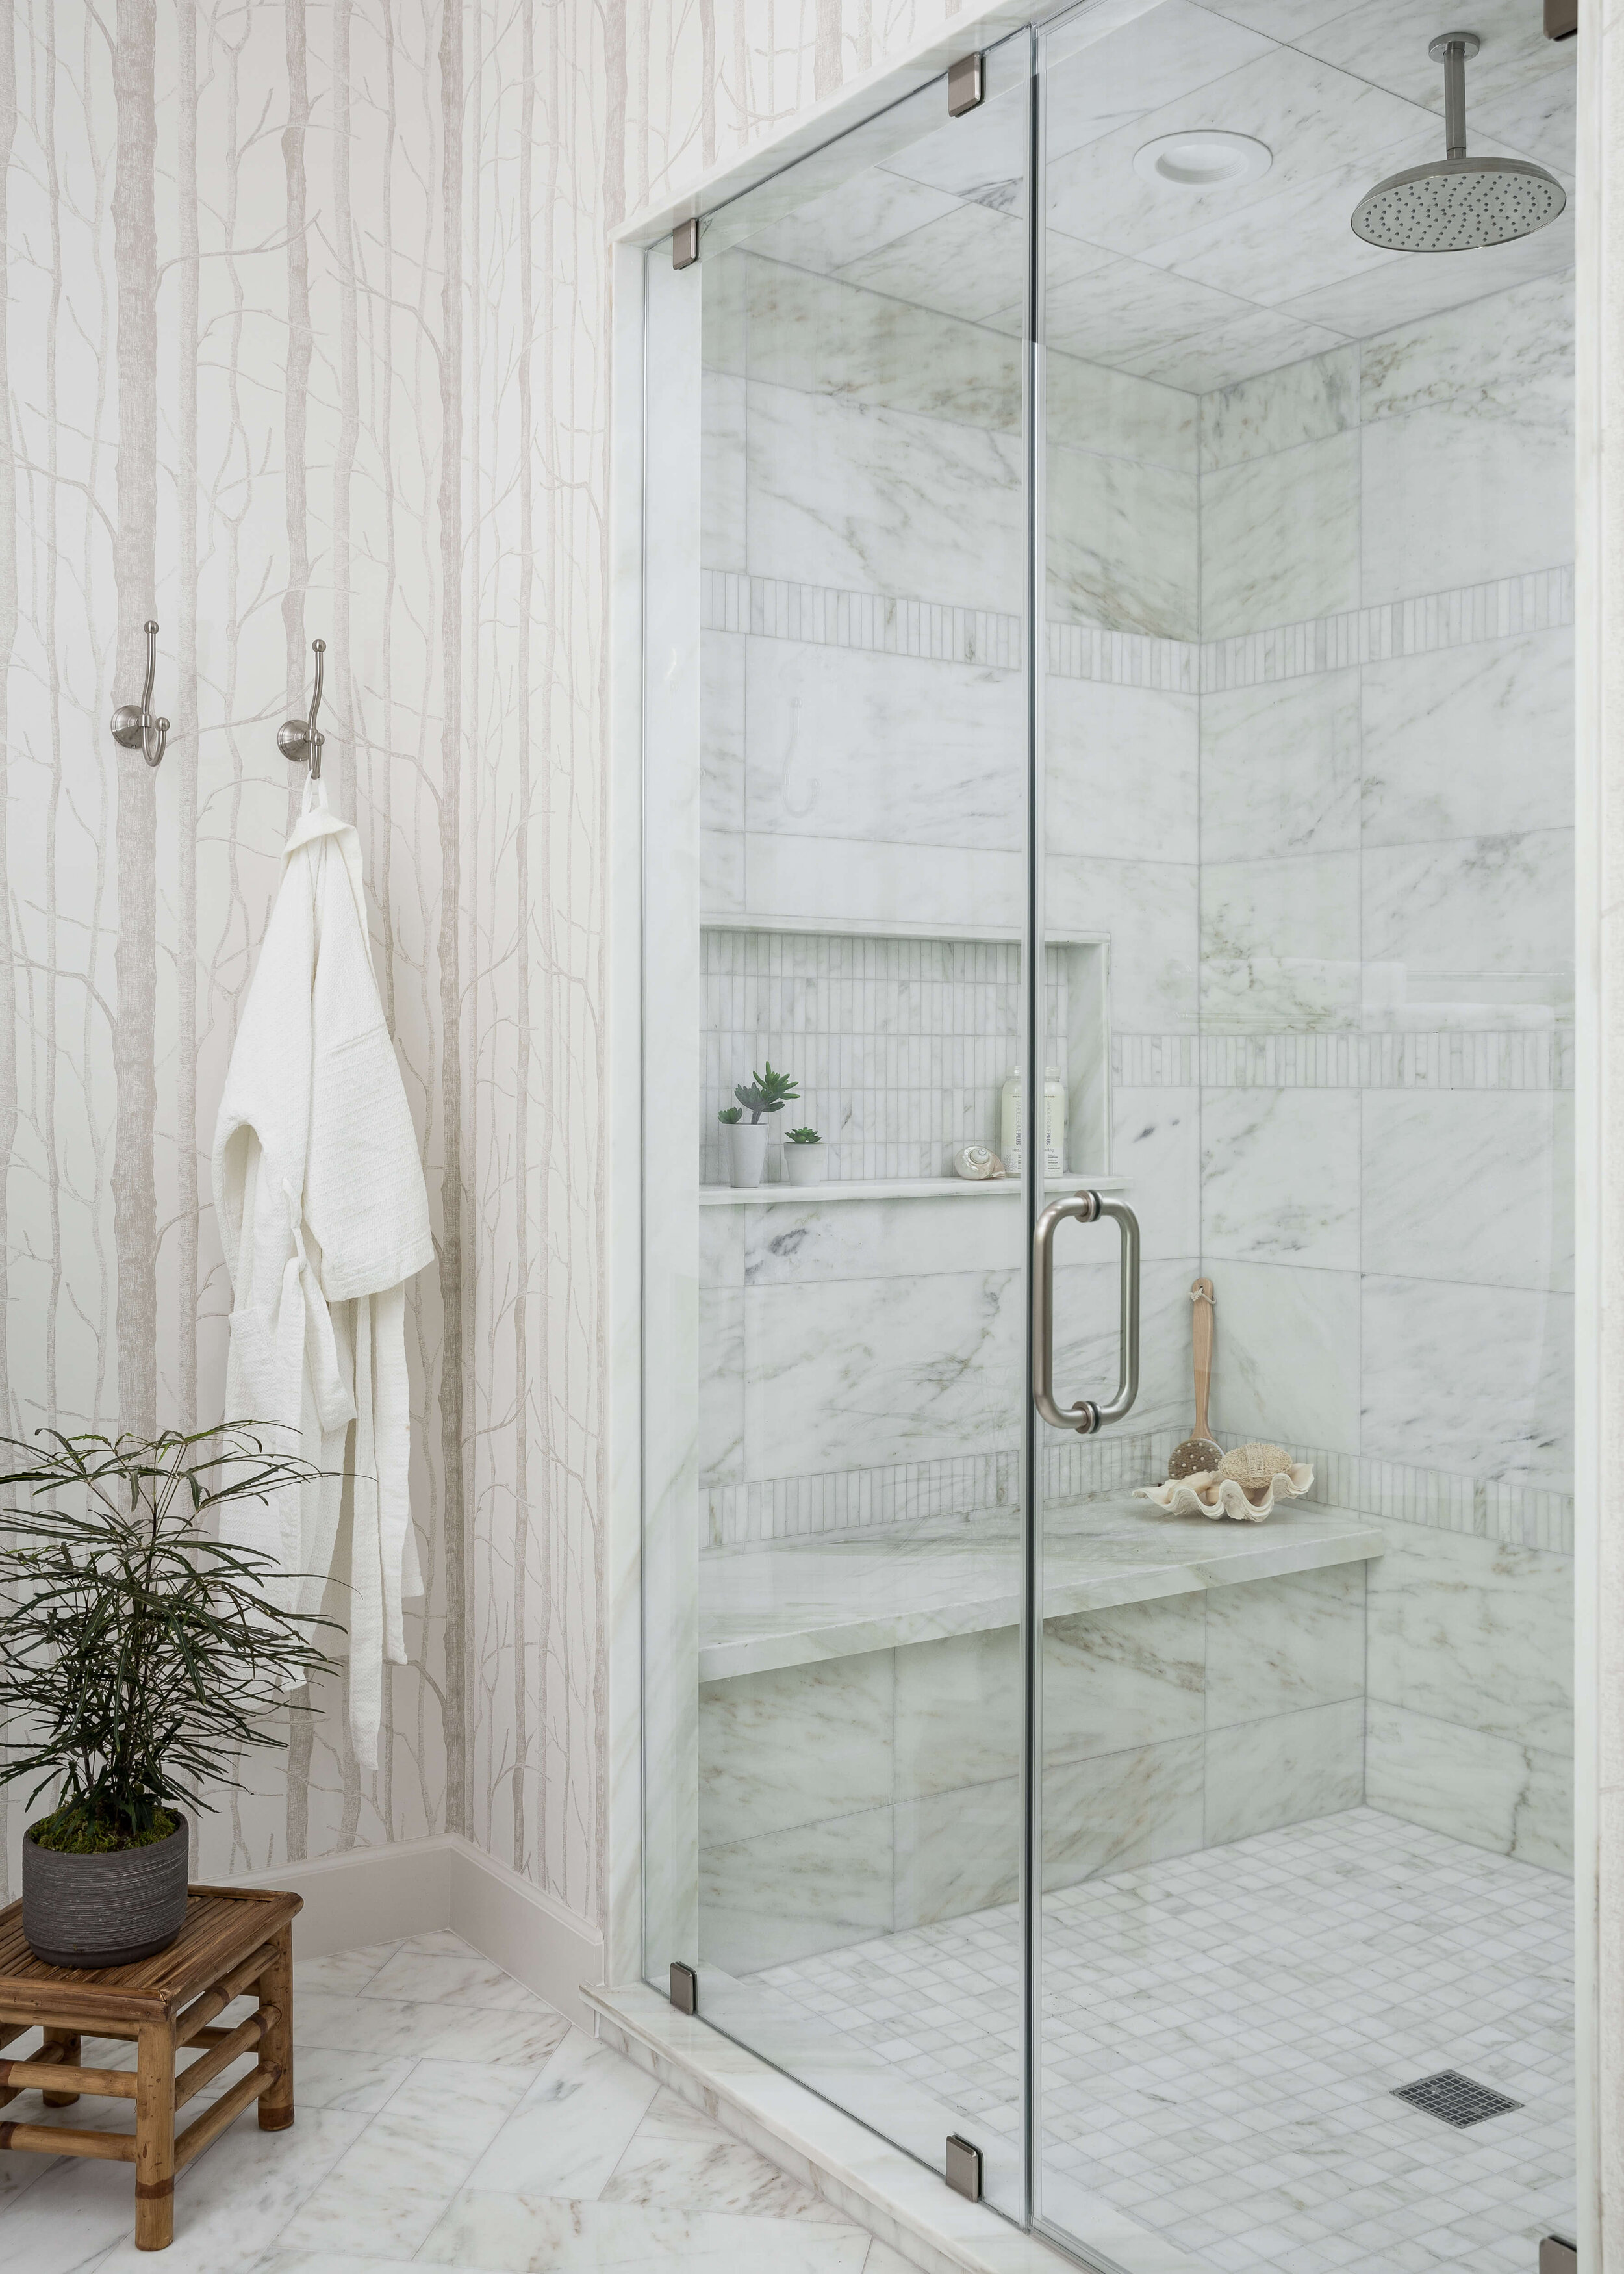 25 Beautiful Shower Niche Ideas For Your Master Bathroom Designed